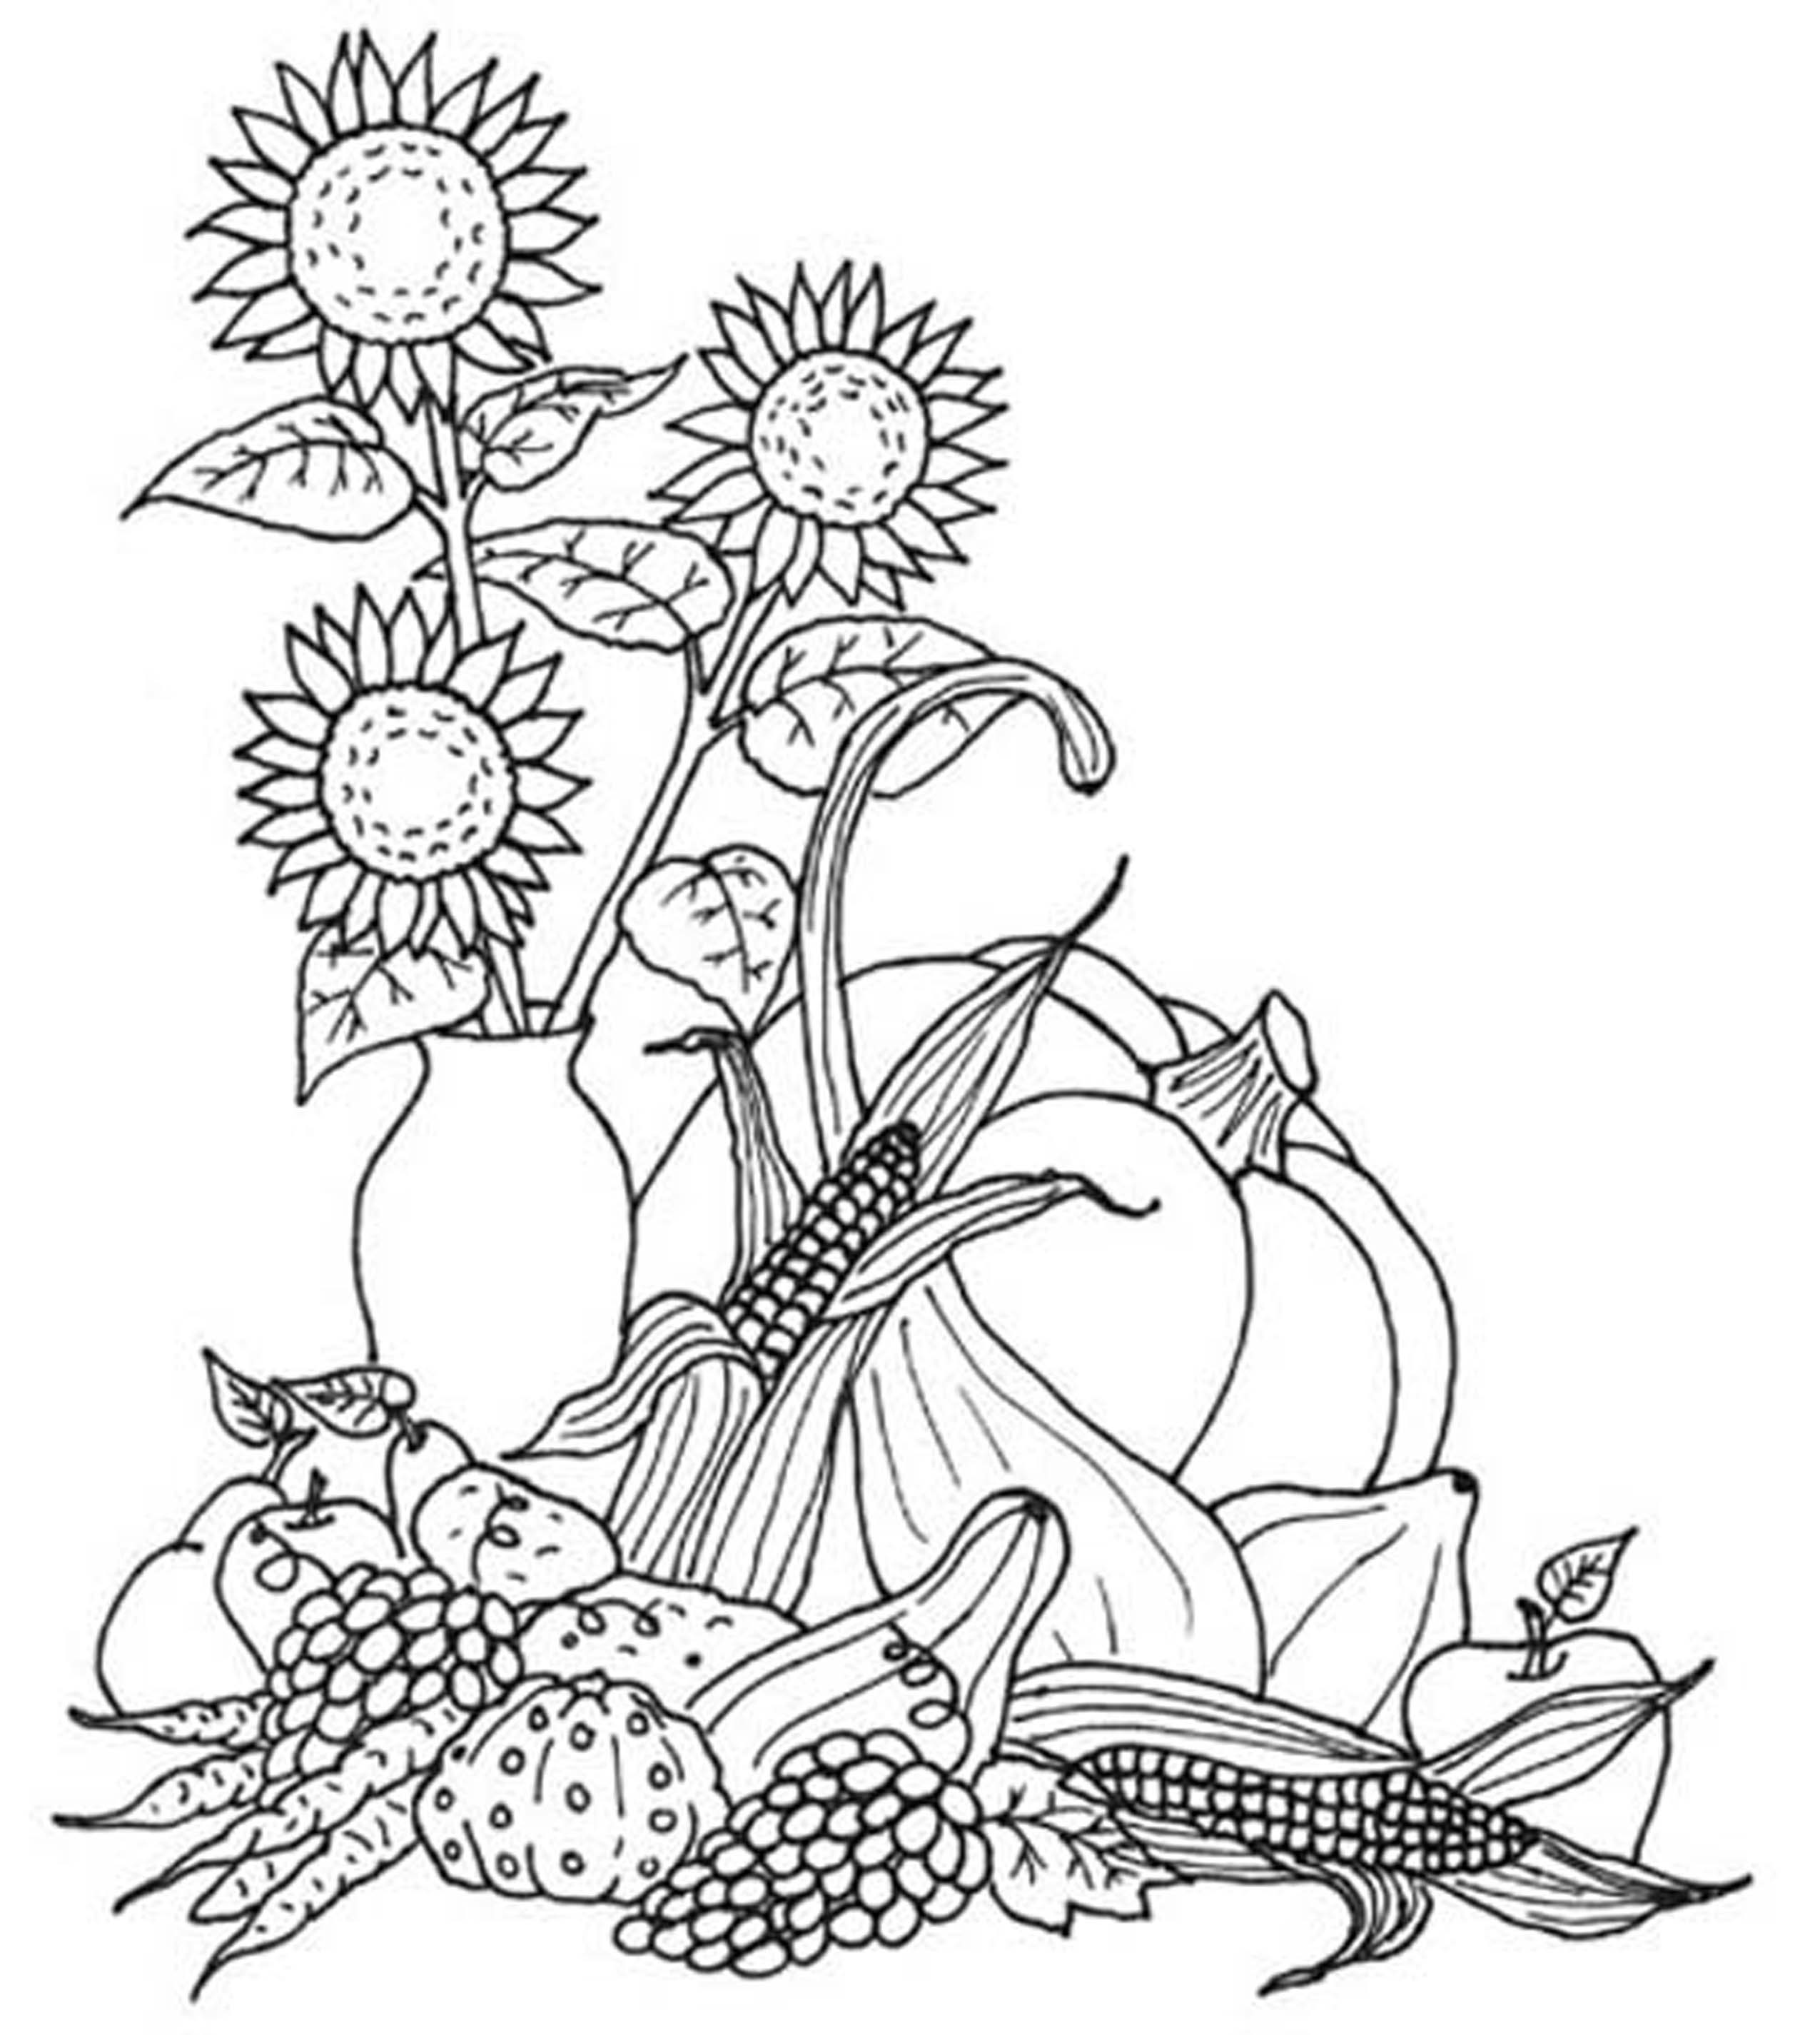 color sheets for fall print download fall coloring pages benefit of fall color sheets for